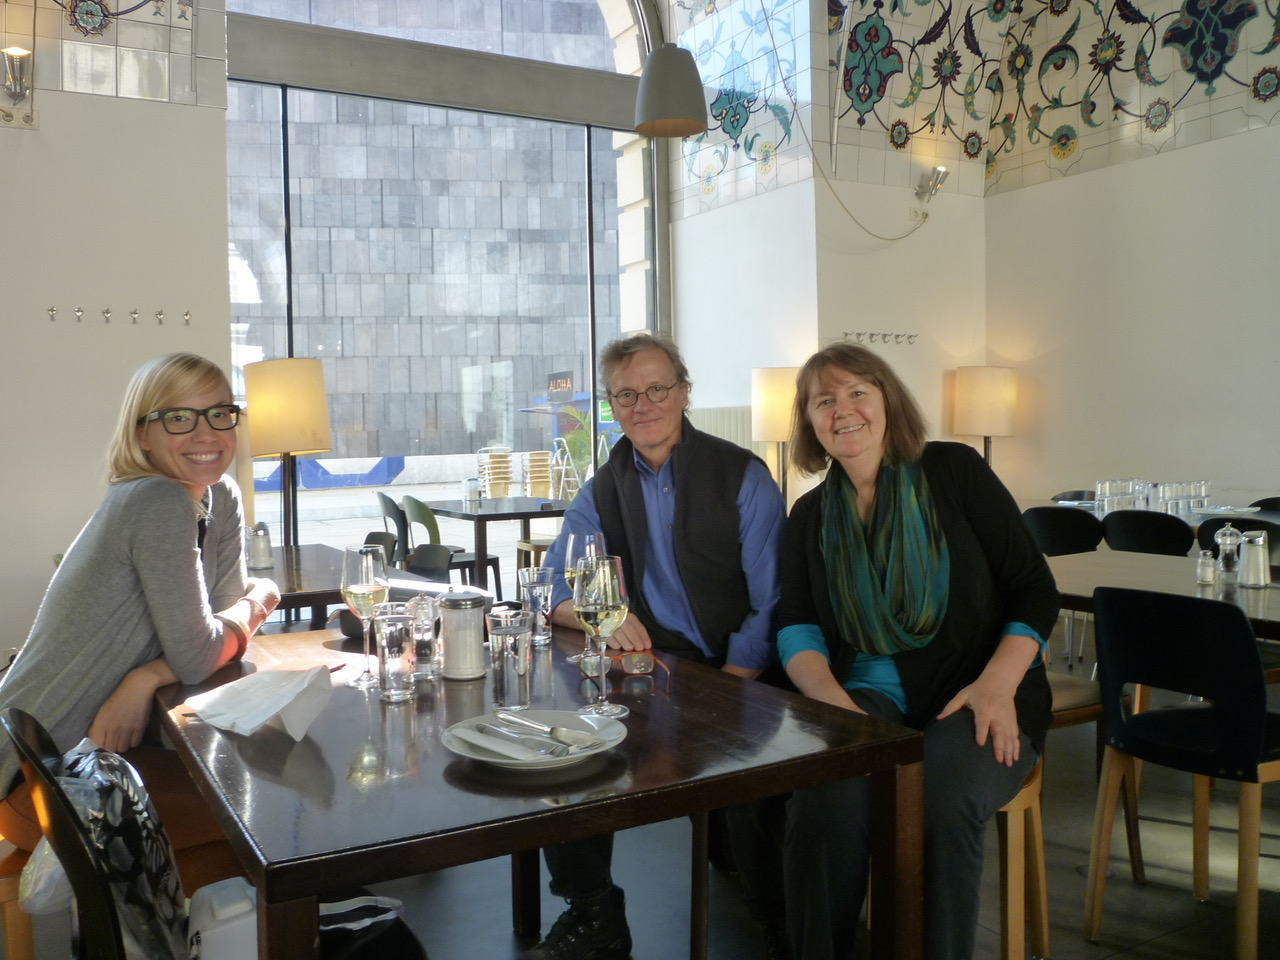 Three people around a table